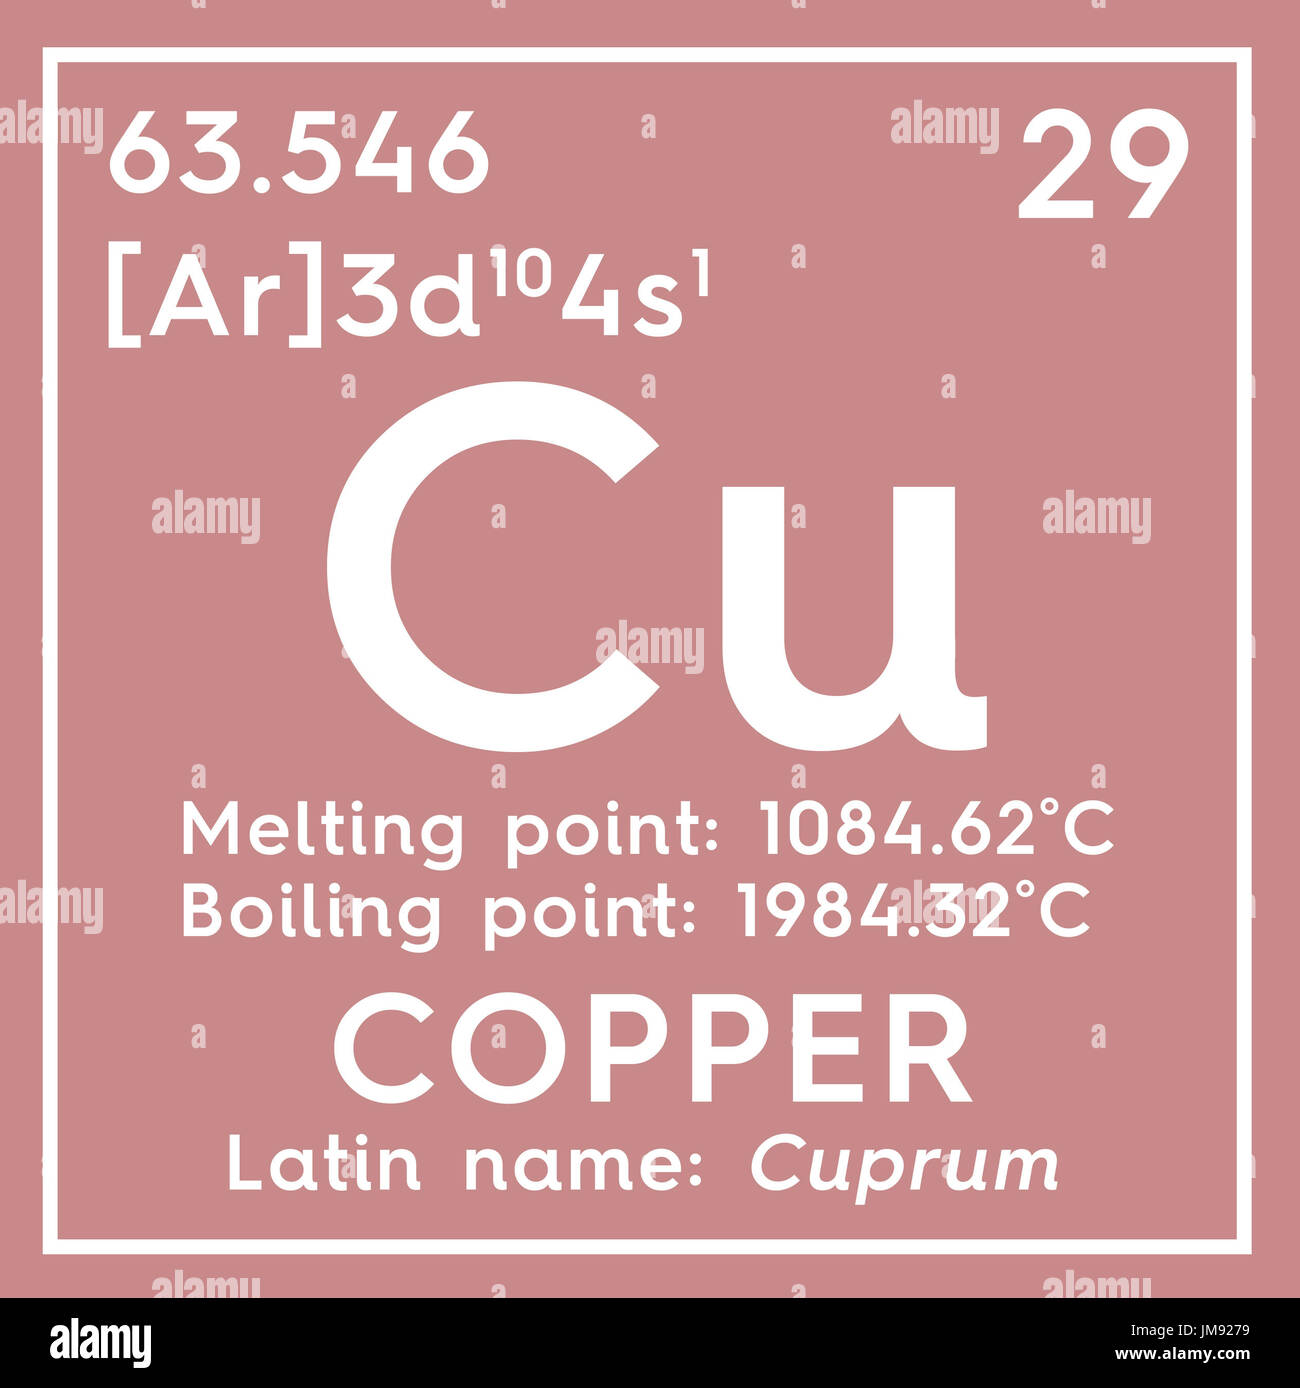 Periodic table copper choice image periodic table images copper cuprum transition metals chemical element of mendeleevs copper cuprum transition metals chemical element of mendeleevs gamestrikefo Gallery